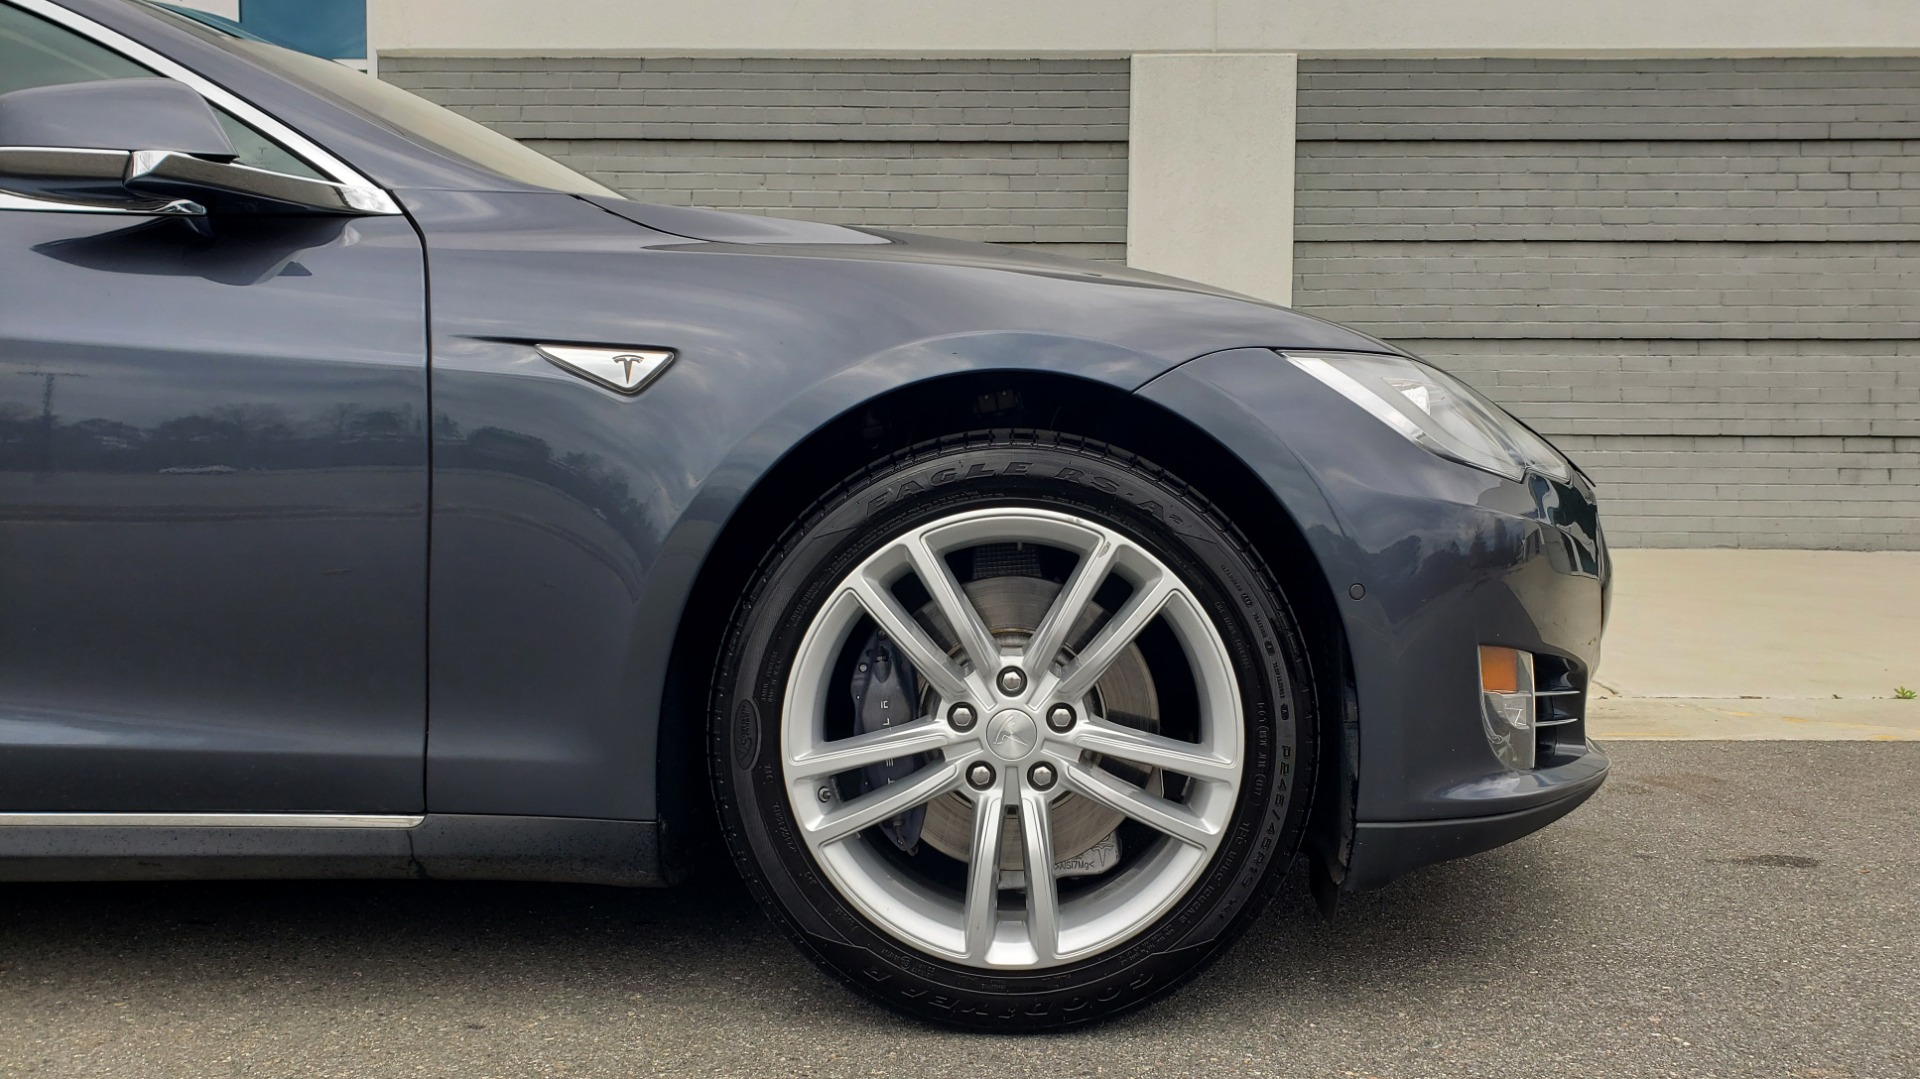 Used 2014 Tesla MODEL S 60 kWh BATTERY / TECH / NAV / SUBZERO / SUNROOF / REARVIEW for sale Sold at Formula Imports in Charlotte NC 28227 67